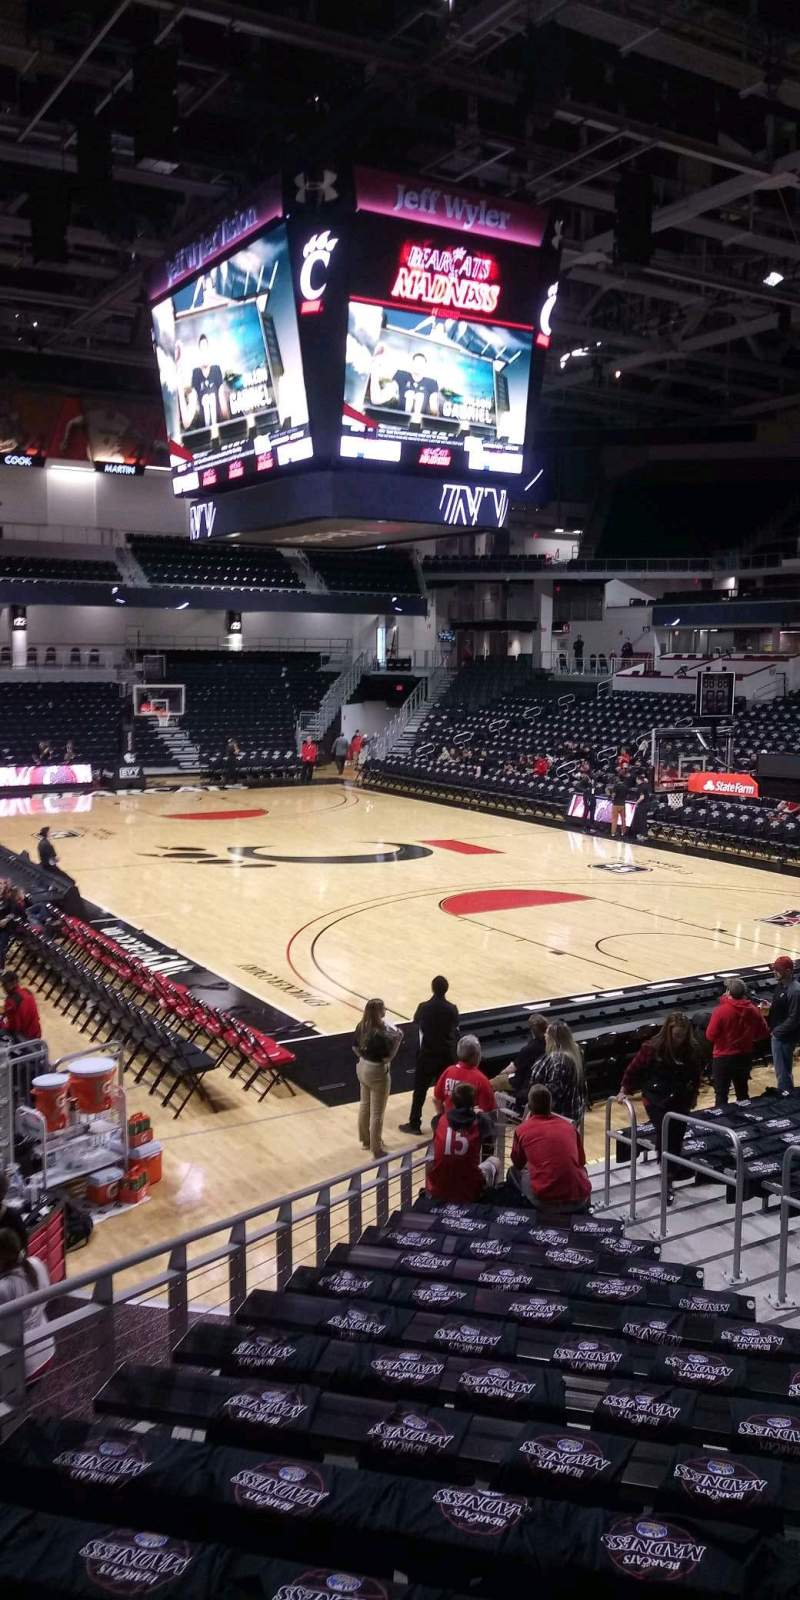 Seating view for Fifth Third Arena Section 112 Row 20 Seat 7